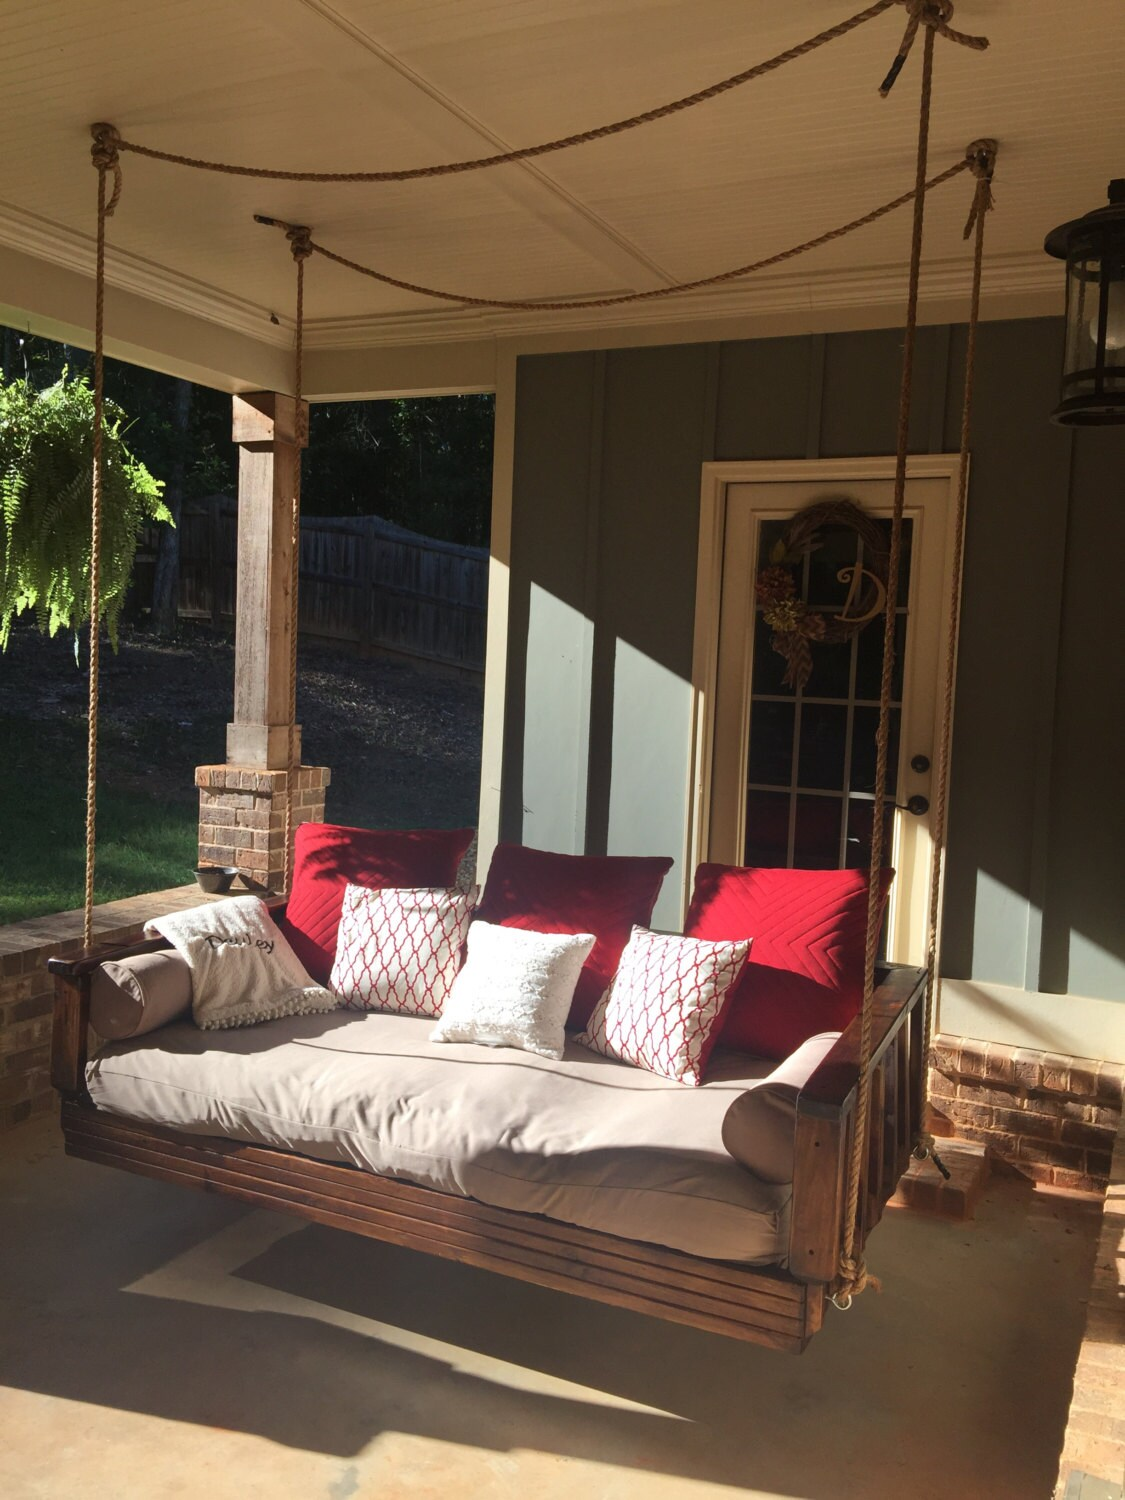 day bed swing porch swing by deuleydesigns on etsy. Black Bedroom Furniture Sets. Home Design Ideas